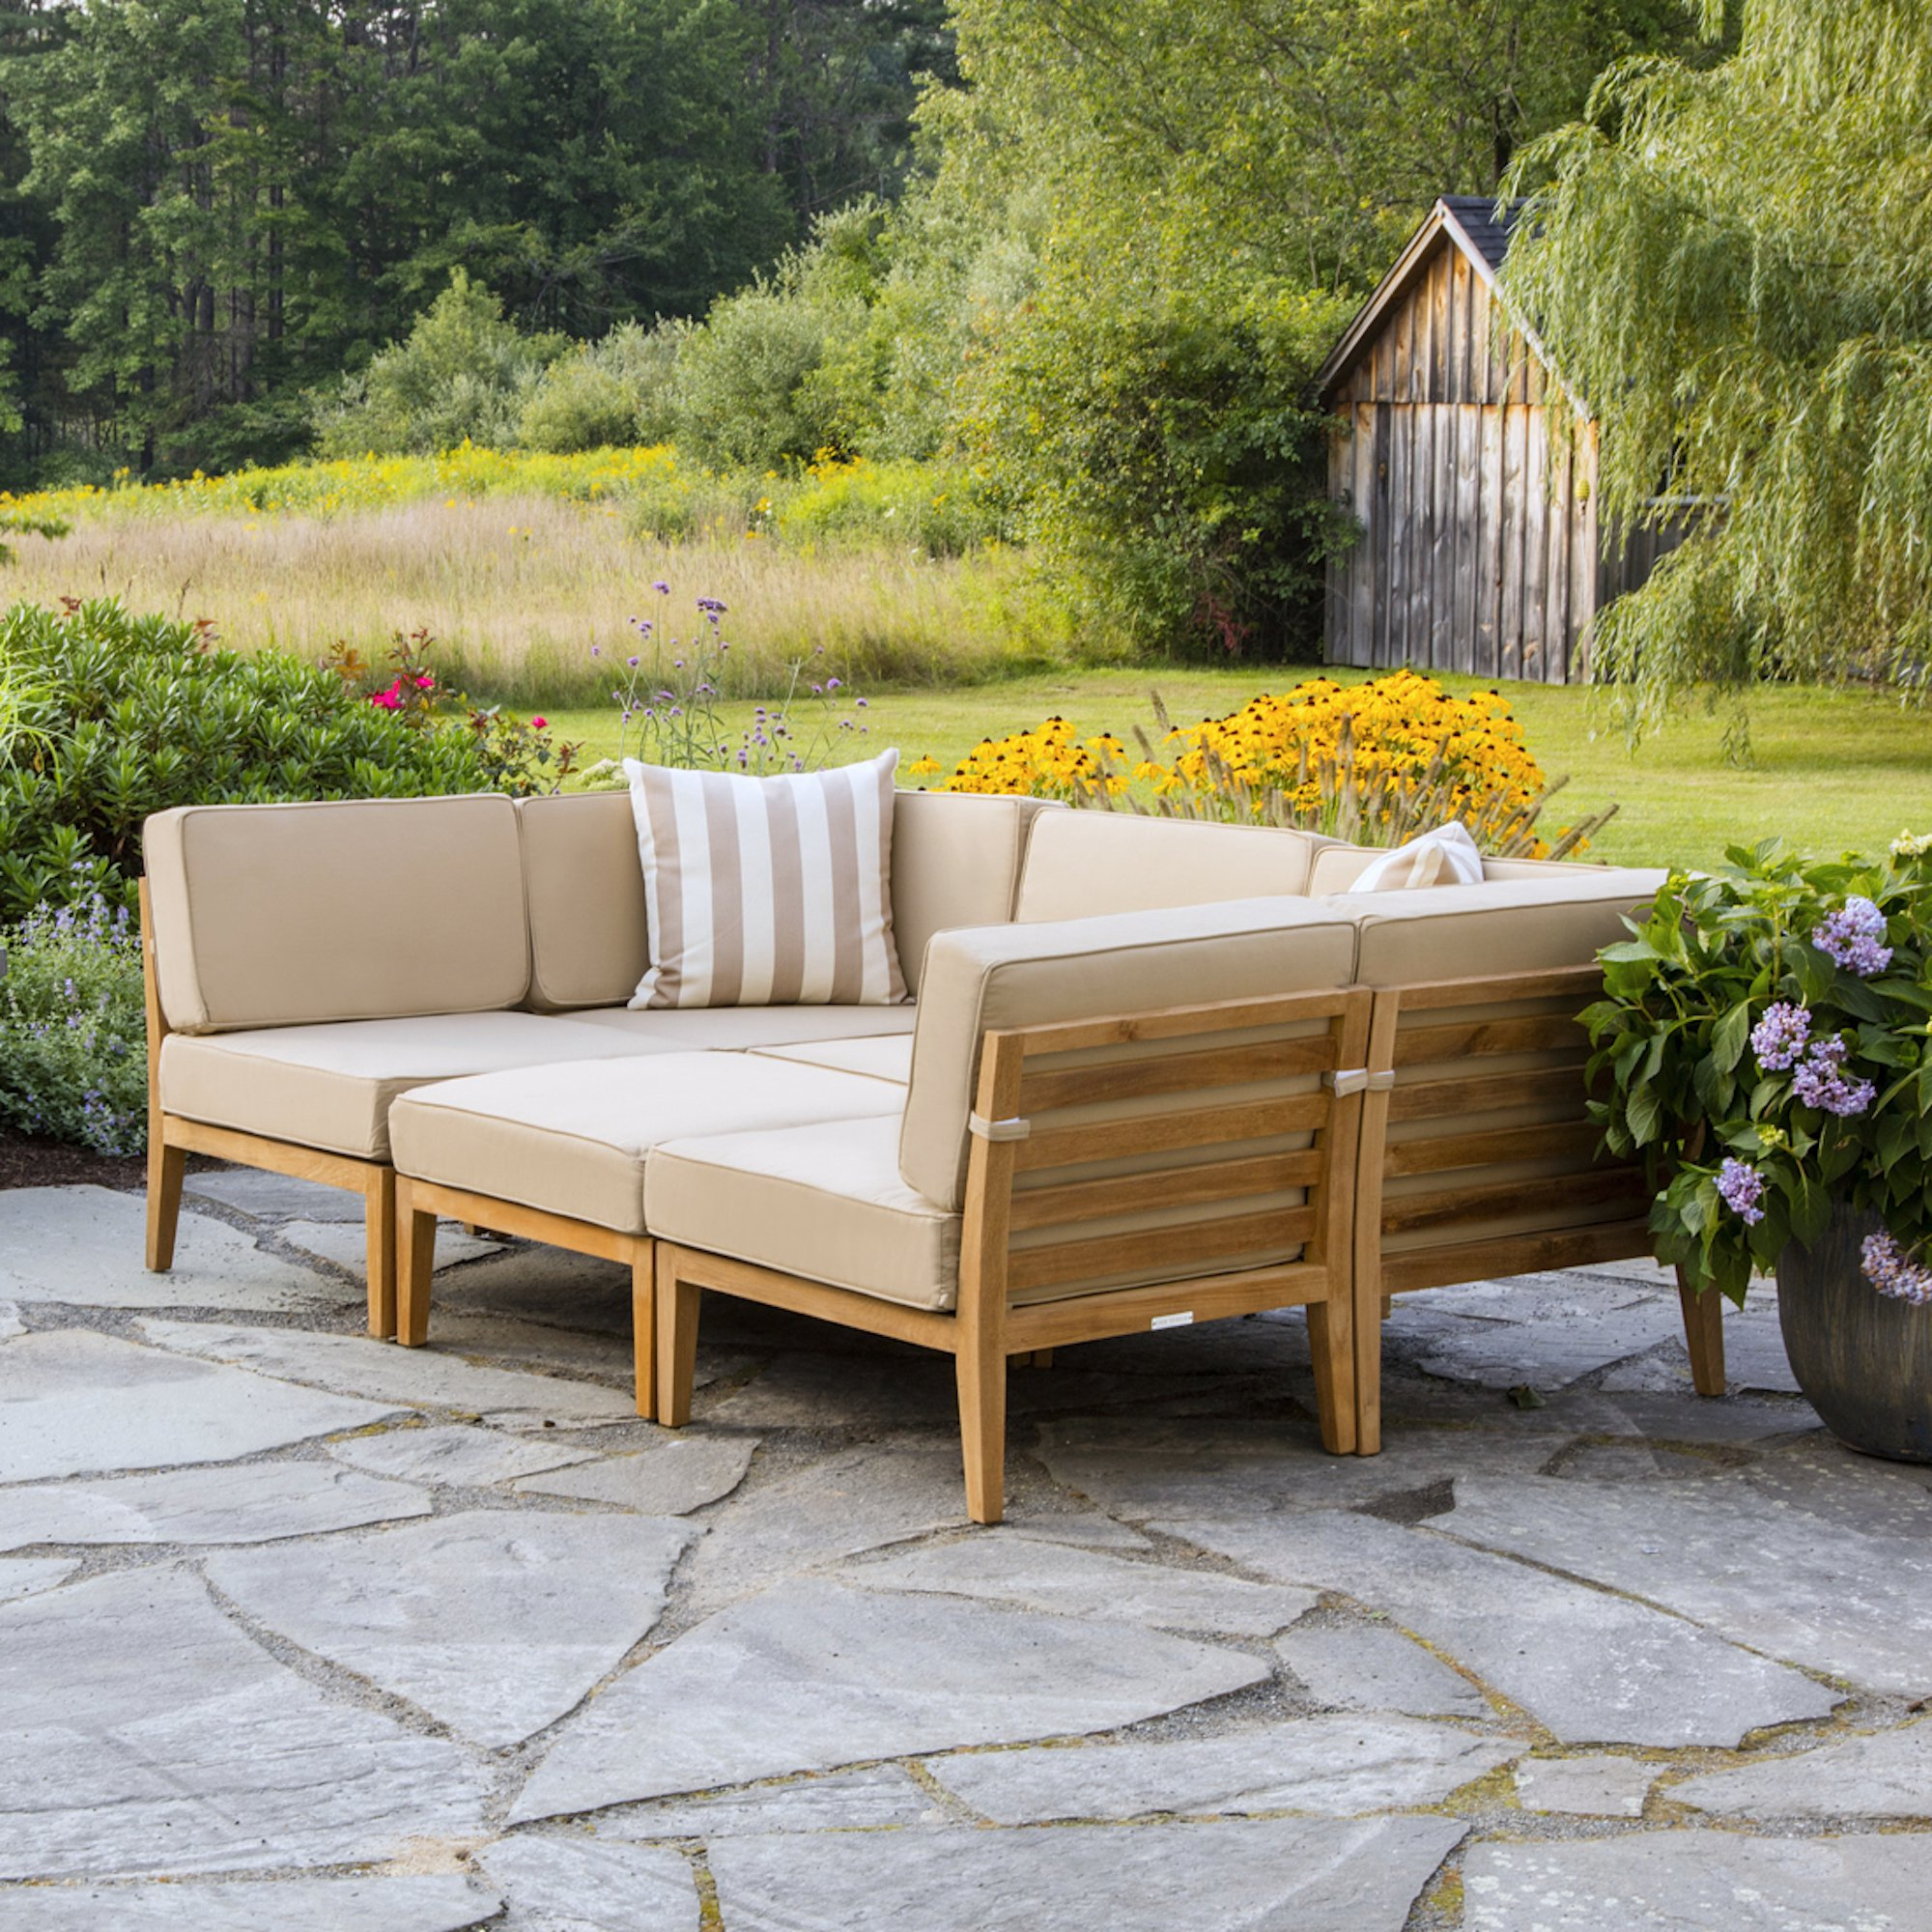 Greta Living Patio Sectionals With Cushions Throughout Widely Used Madbury Road Bali Teak Patio Sectional With Cushions (Gallery 12 of 20)